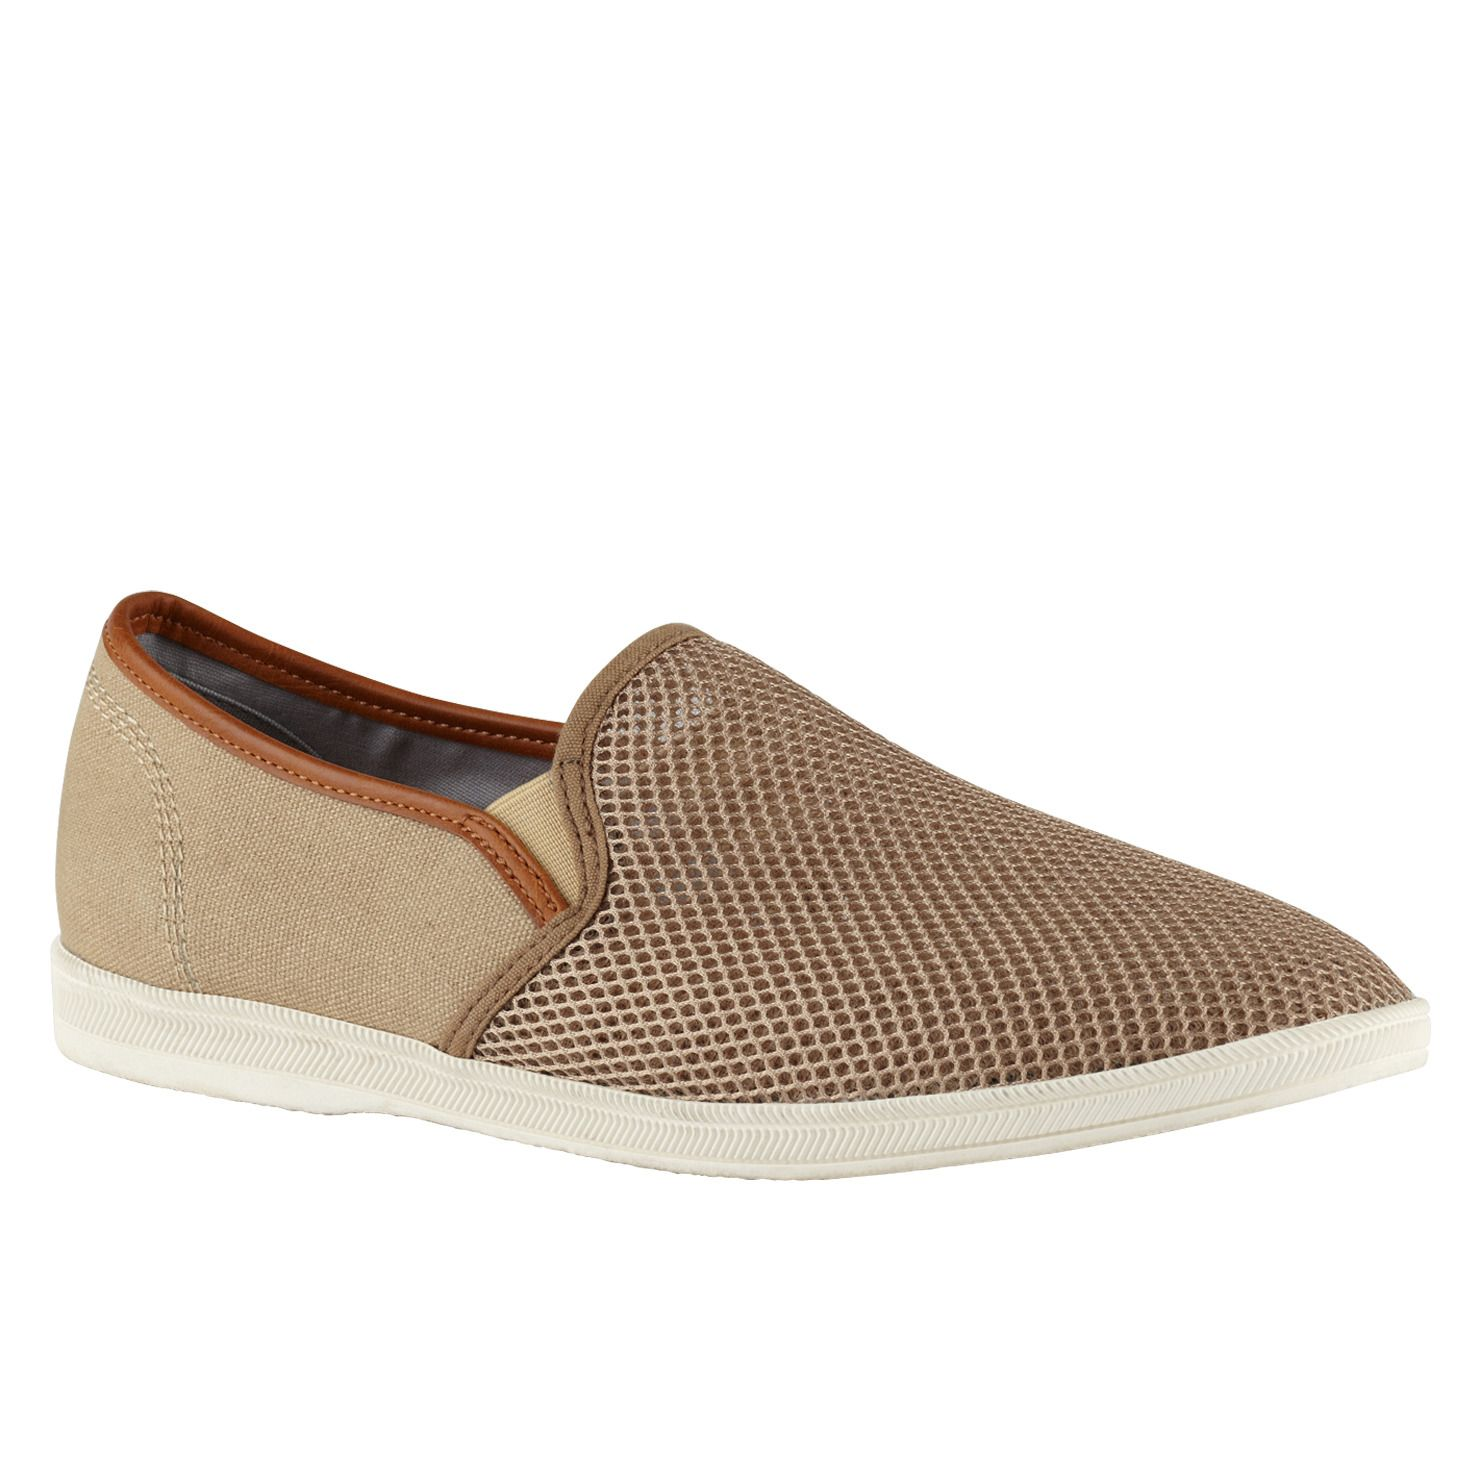 JESCHON - men's slip-ons shoes for sale at ALDO Shoes.